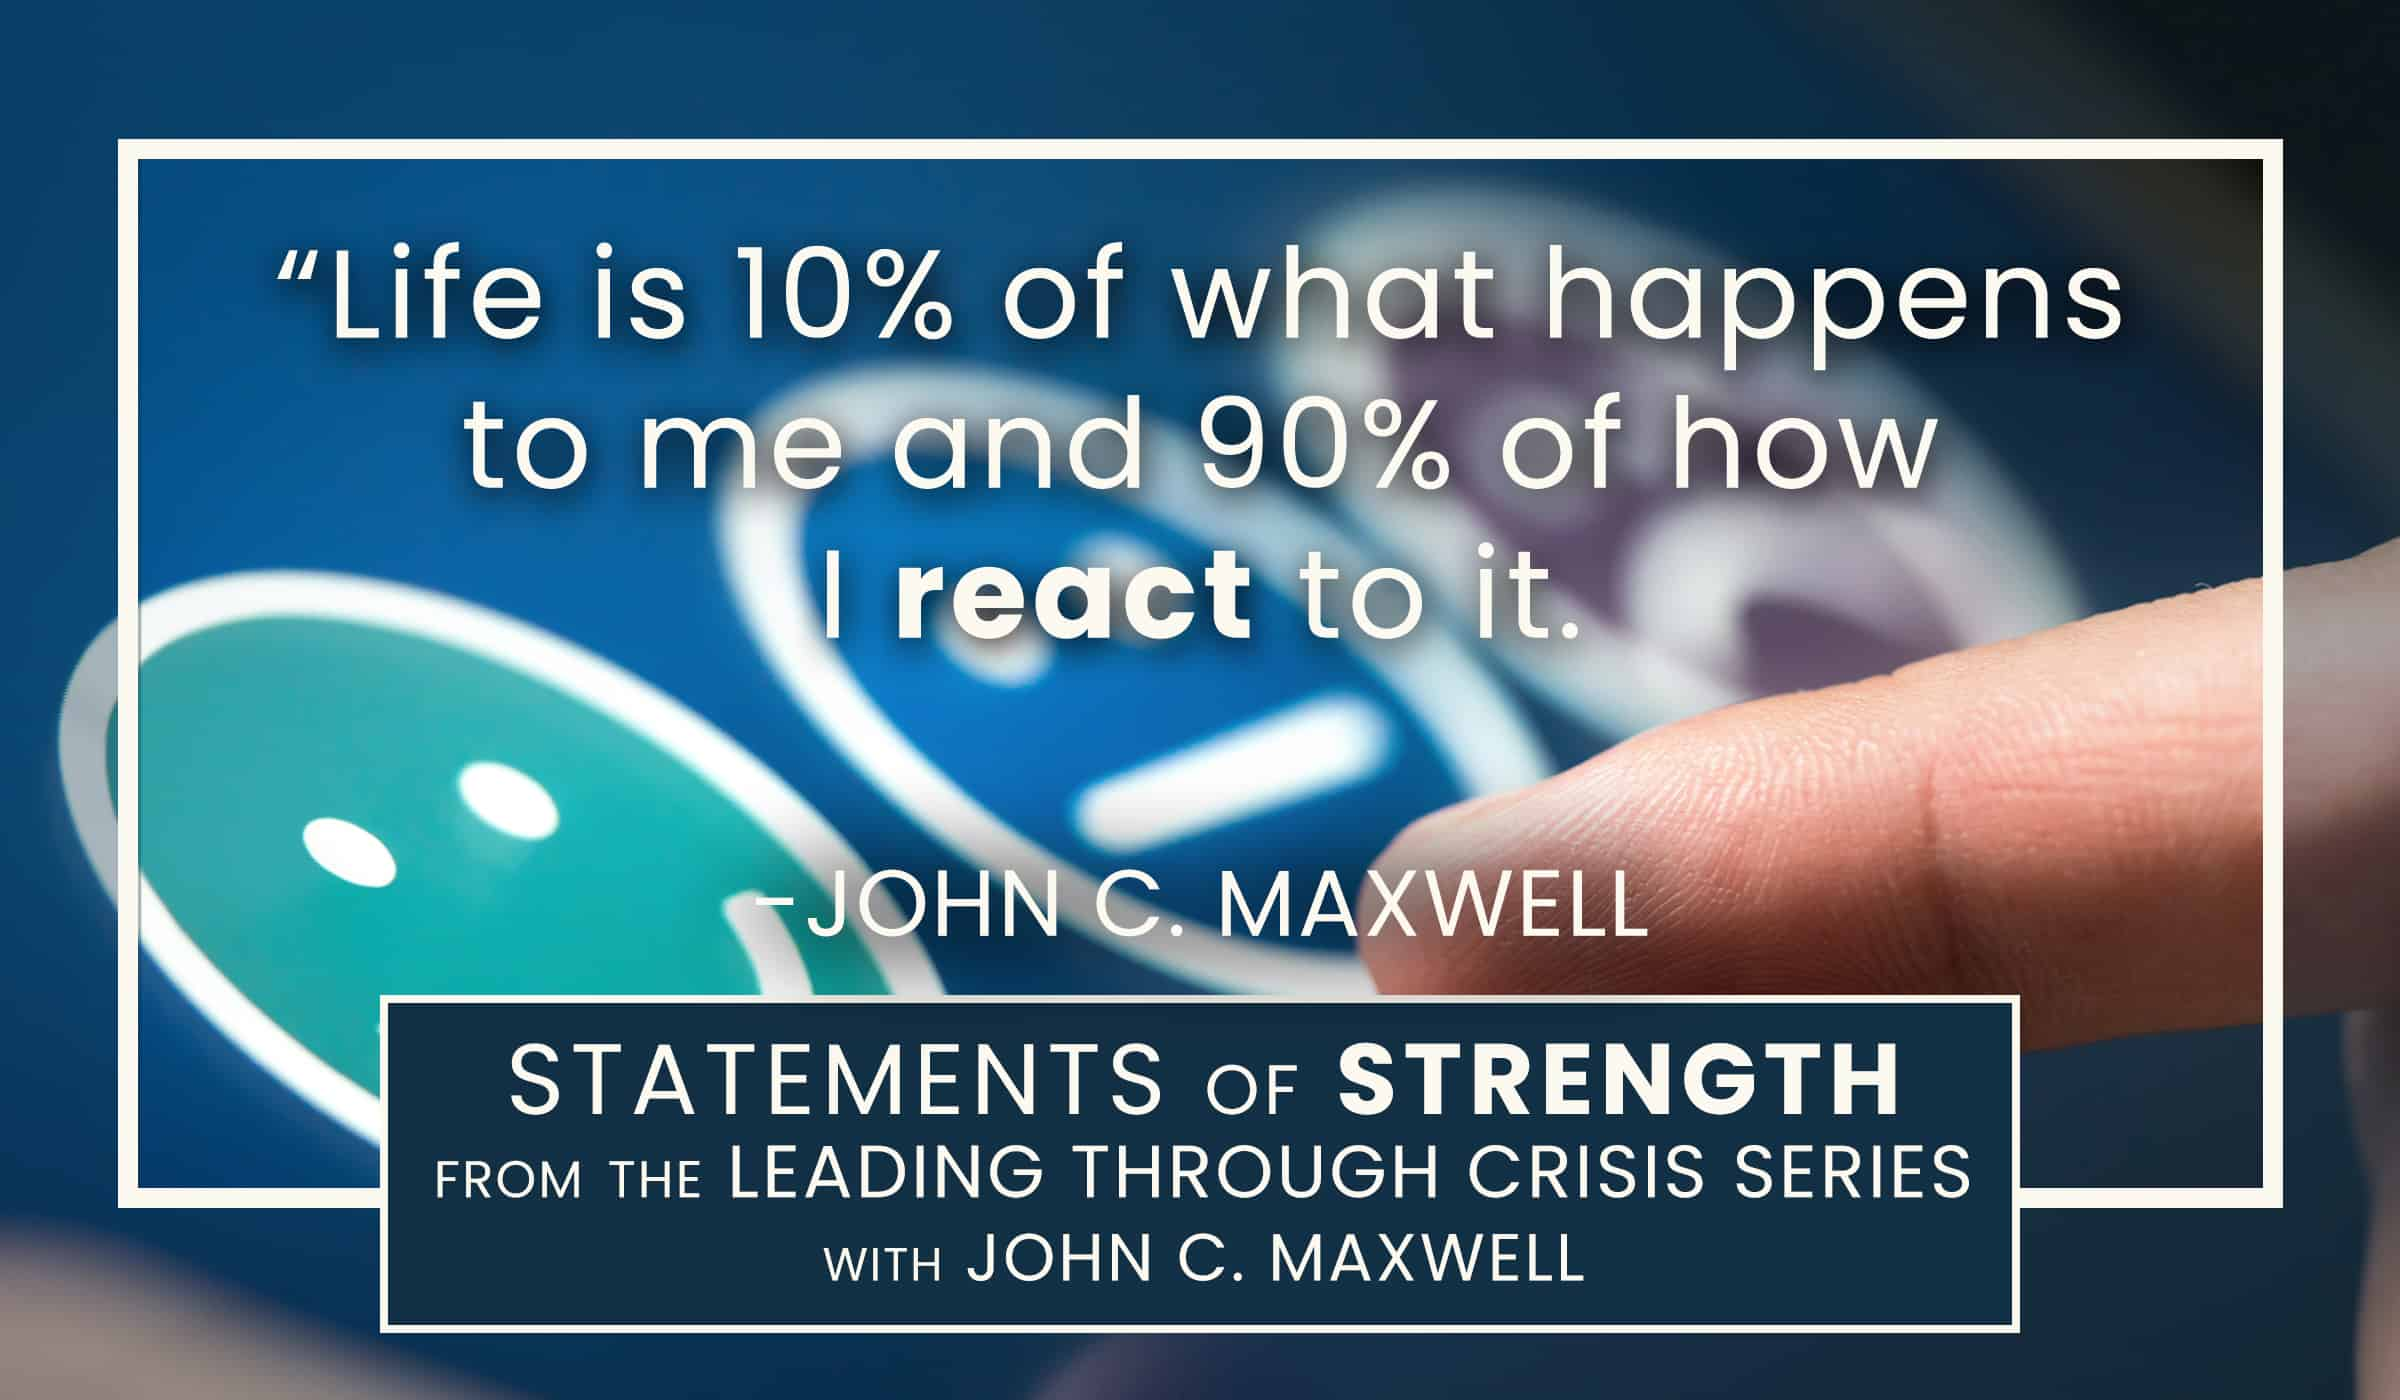 image of quote pic with quotation text by john c maxwell